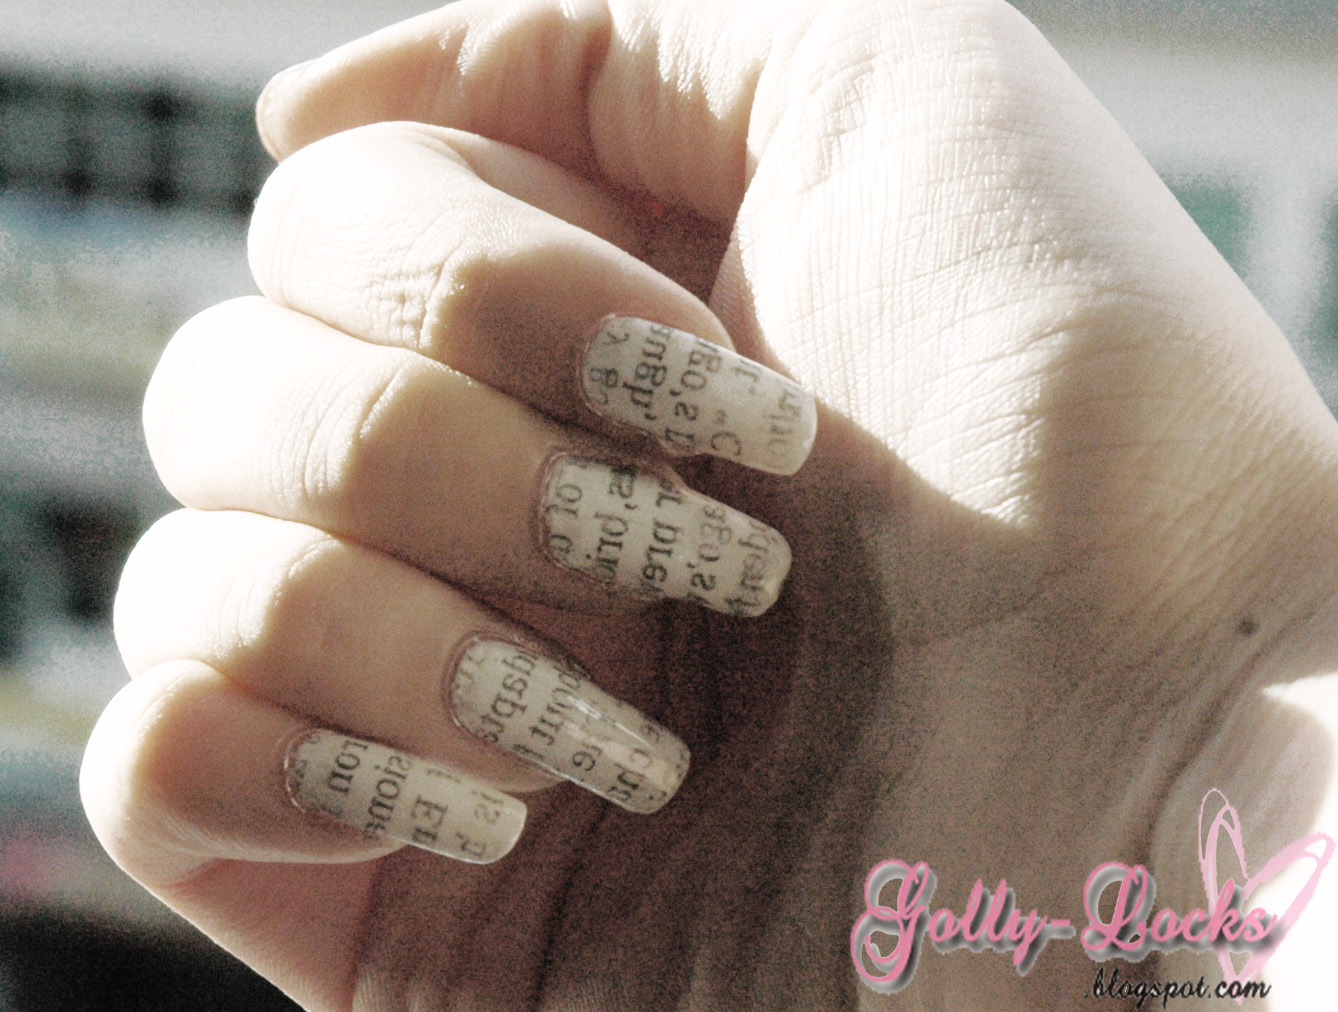 Tutorial] Newspaper Printed Nails - Golly-Locks